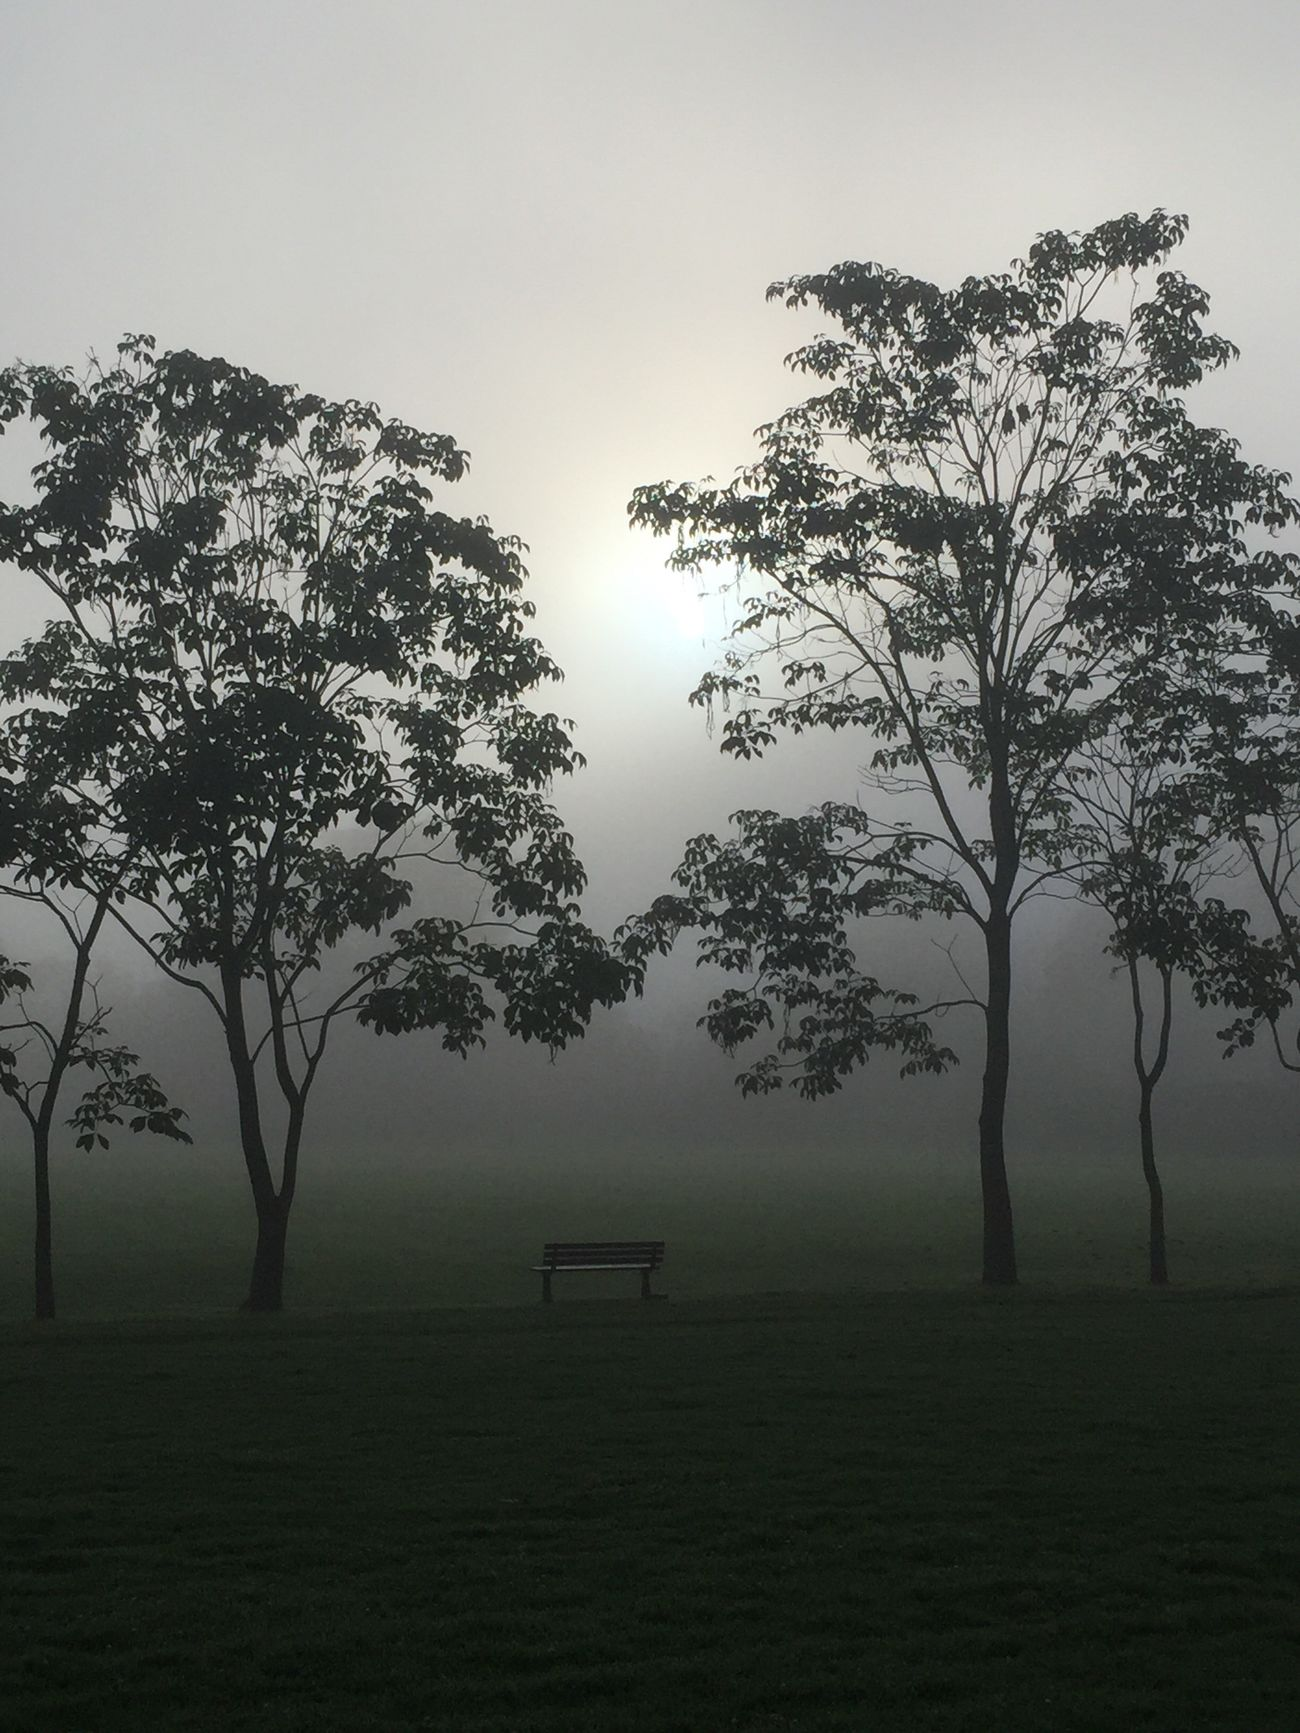 Mist in the park Tree Nature Tranquility Tranquil Scene mist Mist Mist In The Morning Neblina neblina en el parque banca en el parque Growth No People Fog Beauty In Nature Landscape Outdoors Hazy  Grass Sky Day